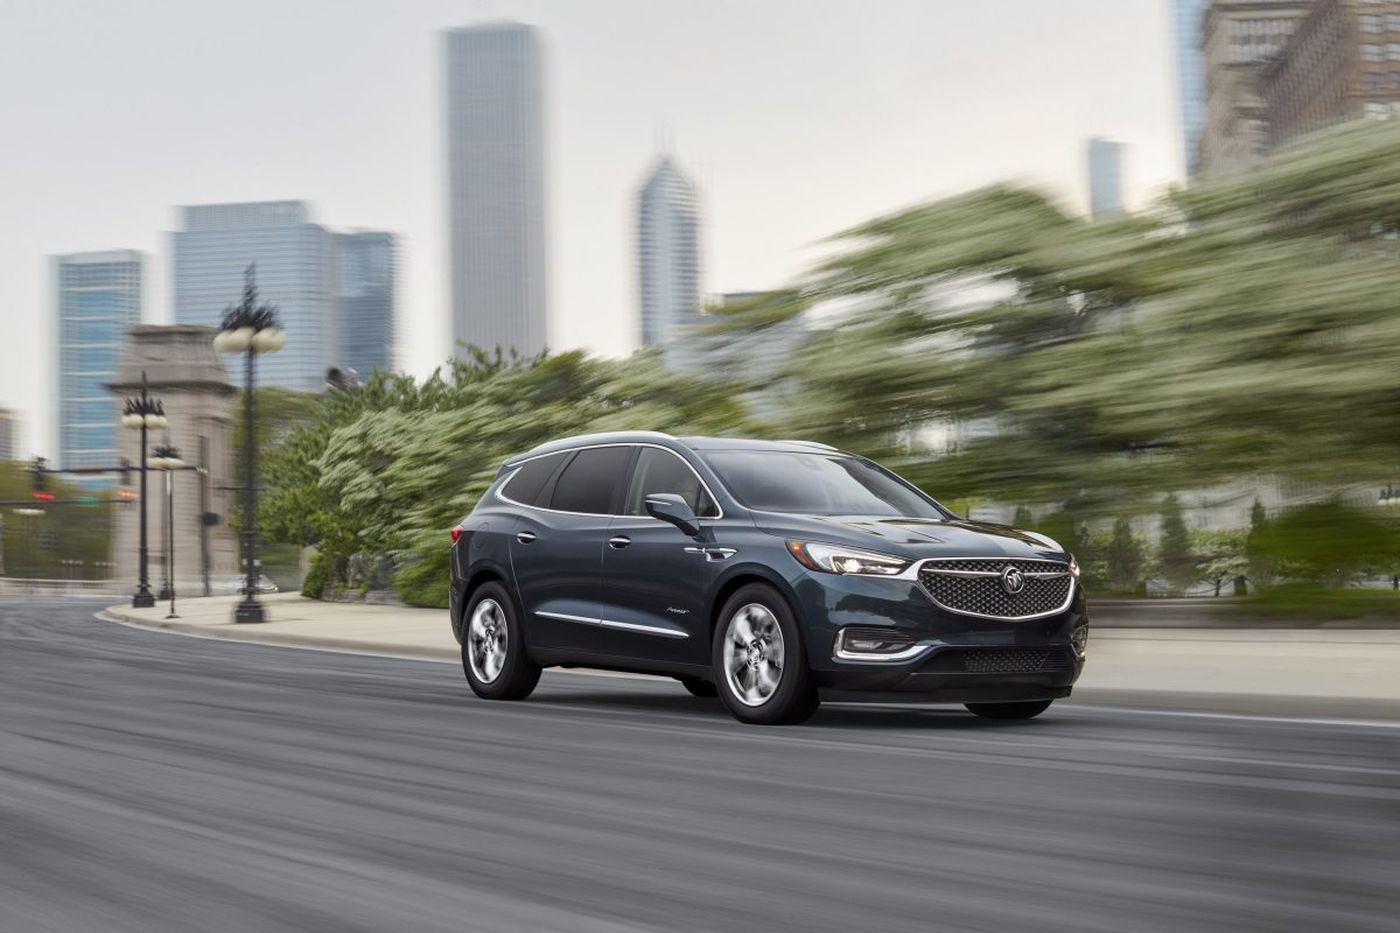 2018 Buick Enclave delivers luxury-car style, room, and comfort